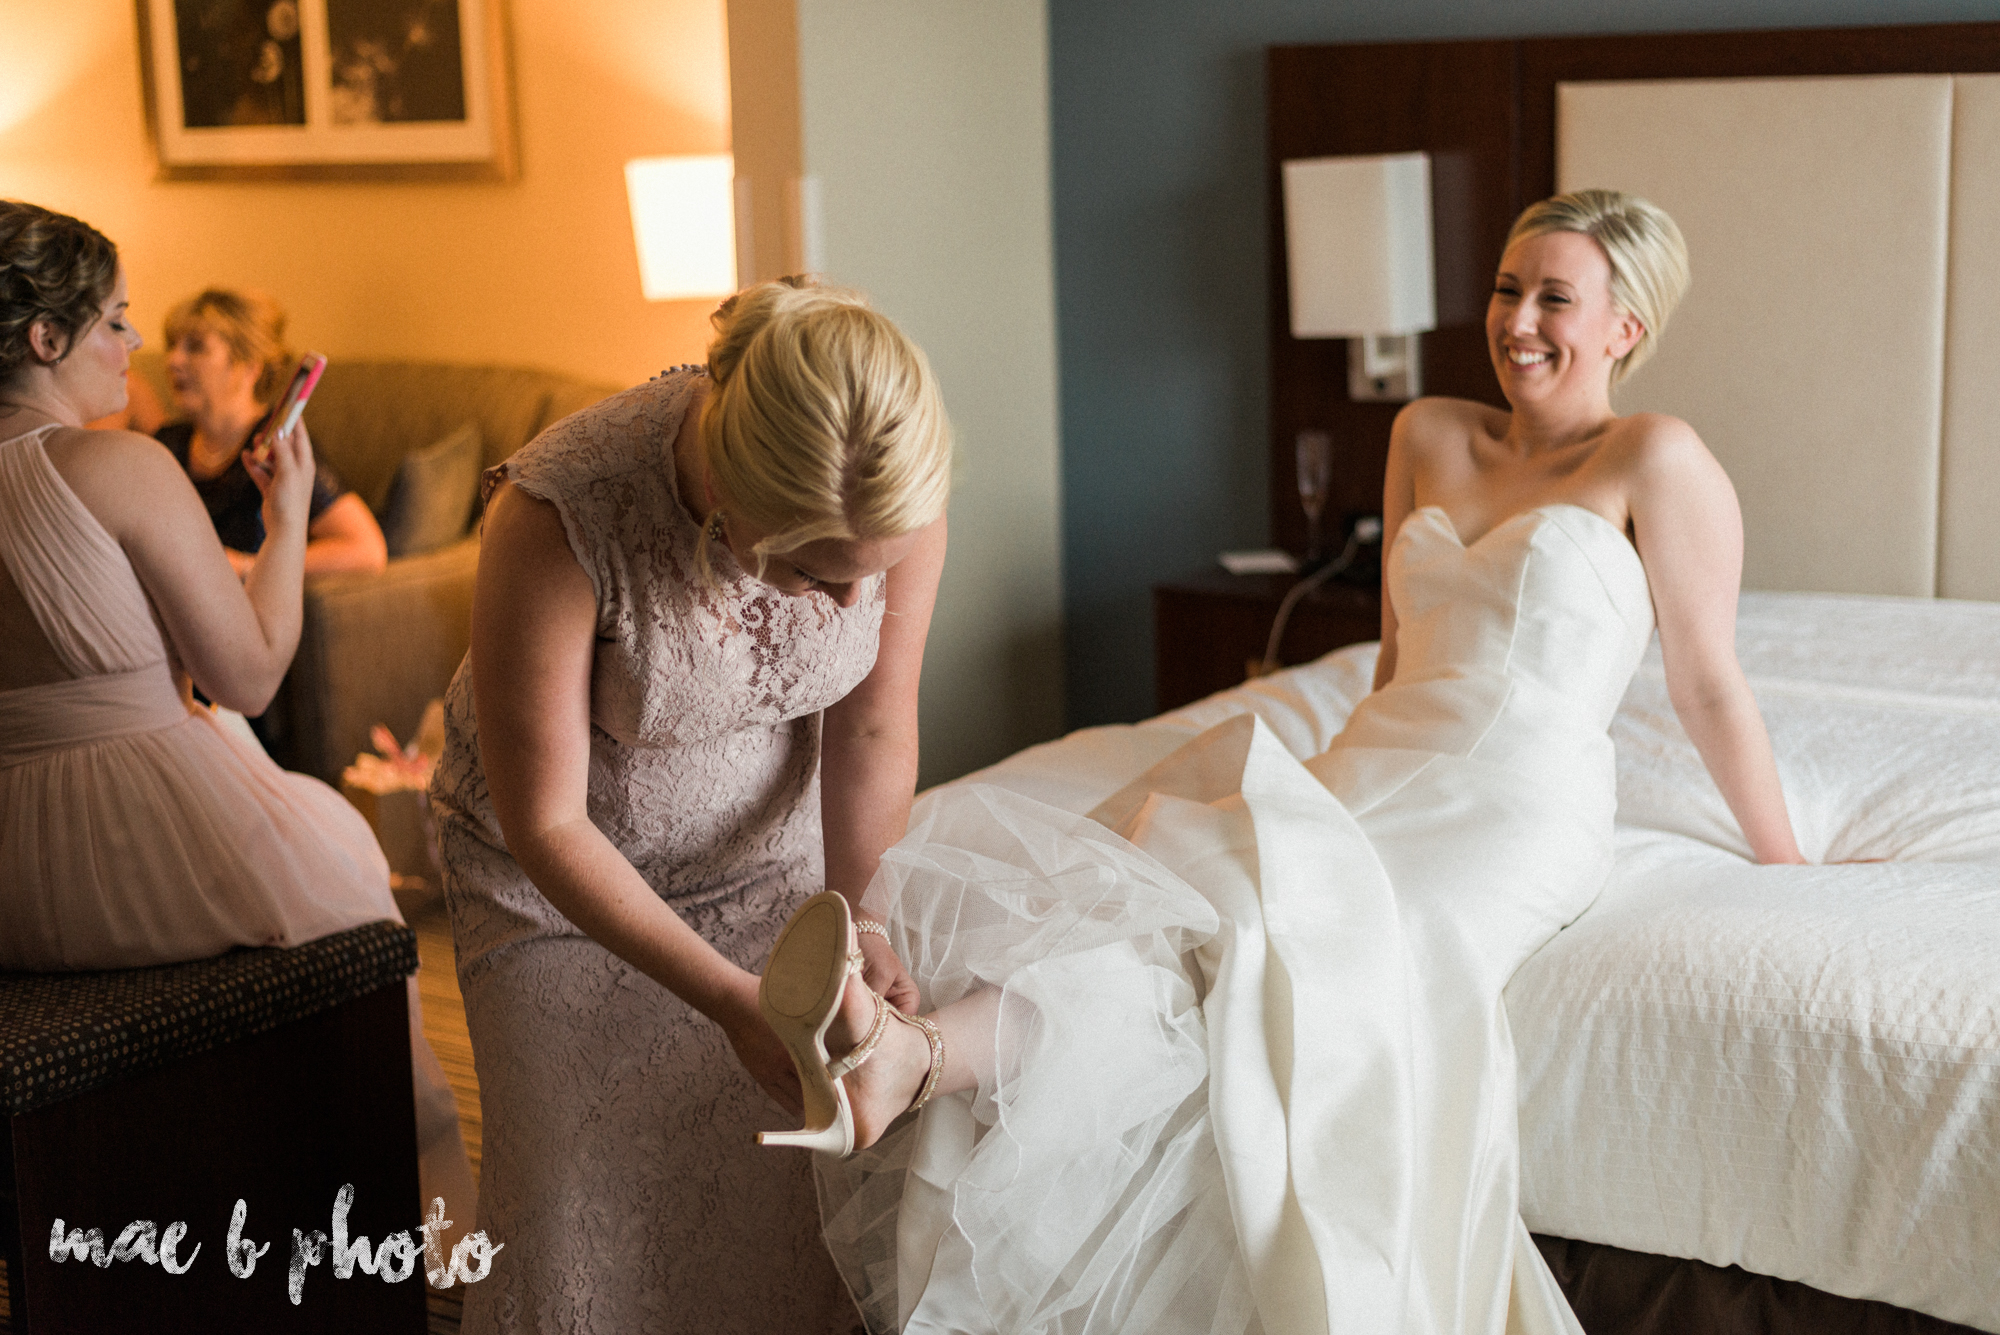 emily and michael's industrial chic summer country club wedding at the lake club in poland ohio photographed by cleveland wedding photographer mae b photo-39.jpg